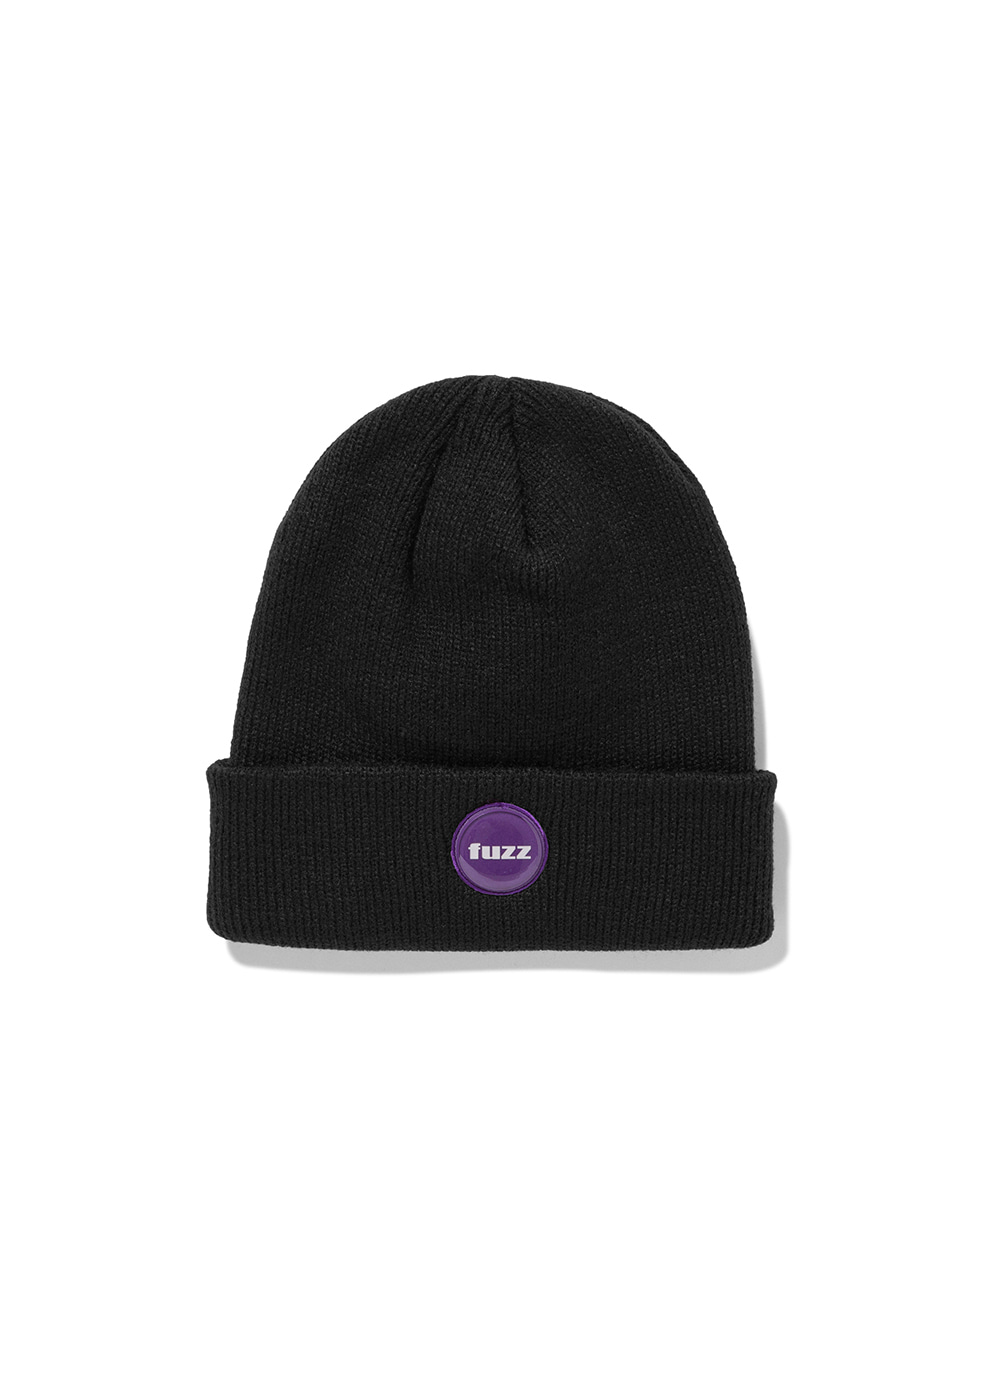 FUZZ EPOXY LABEL BEANIE black